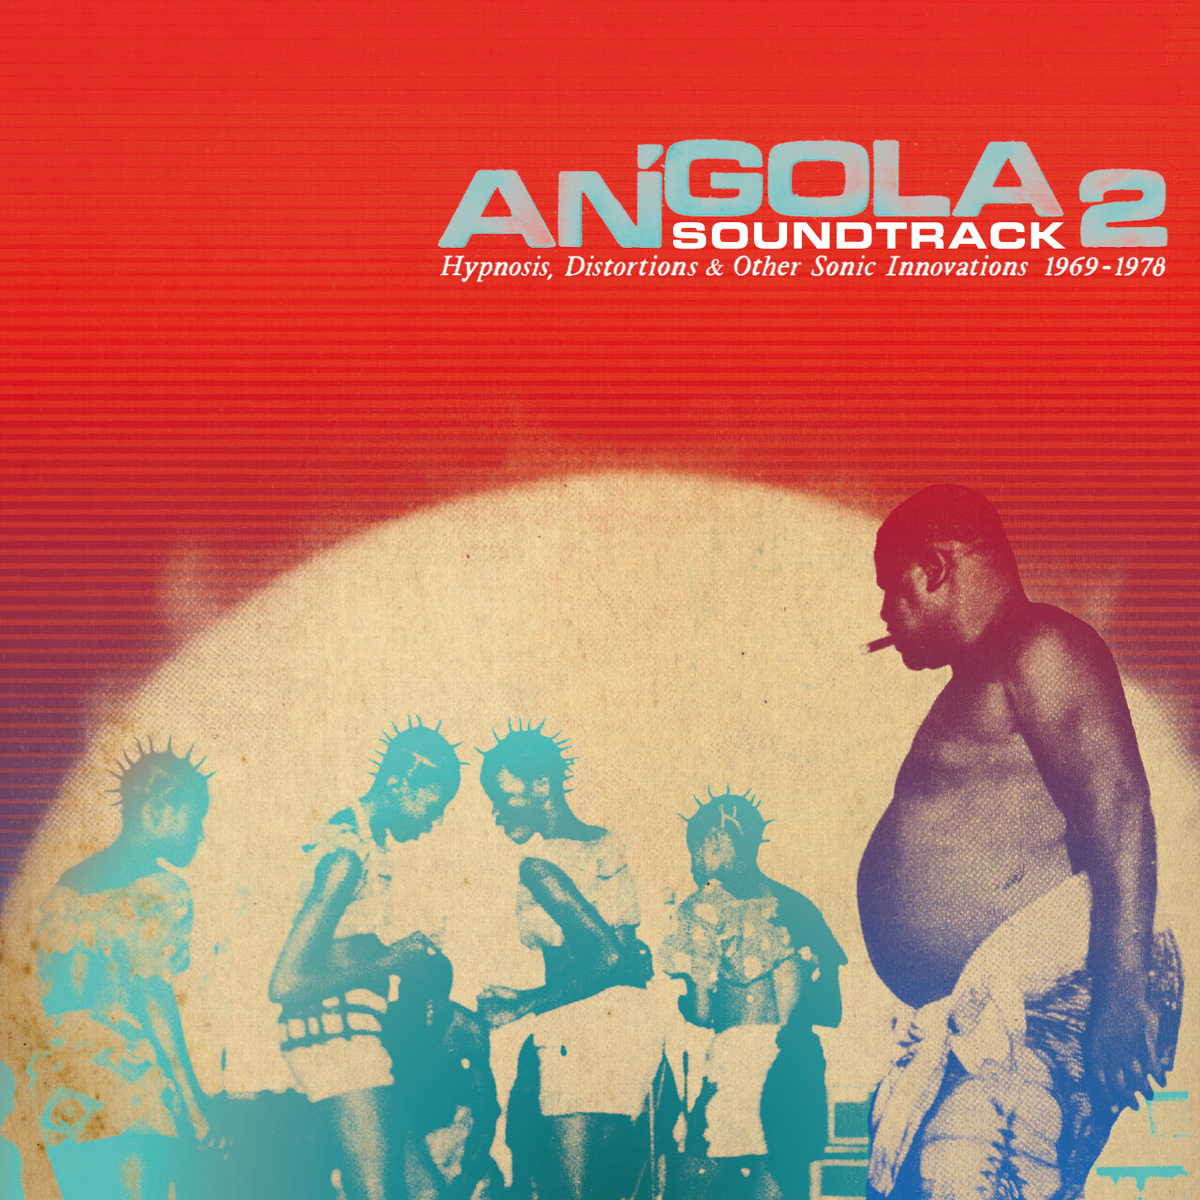 Angola Soundtrack 2 - Hypnosis, Distorsions & Other Sonic Innovations 196-978  Release Date: December 2, 2013 Label: Analog Africa  SERVICE: Restoration, Mastering SOURCE MATERIAL: 45 rpm records NUMBER OF DISCS: 1 GENRE: Angolan FORMAT: CD and LP